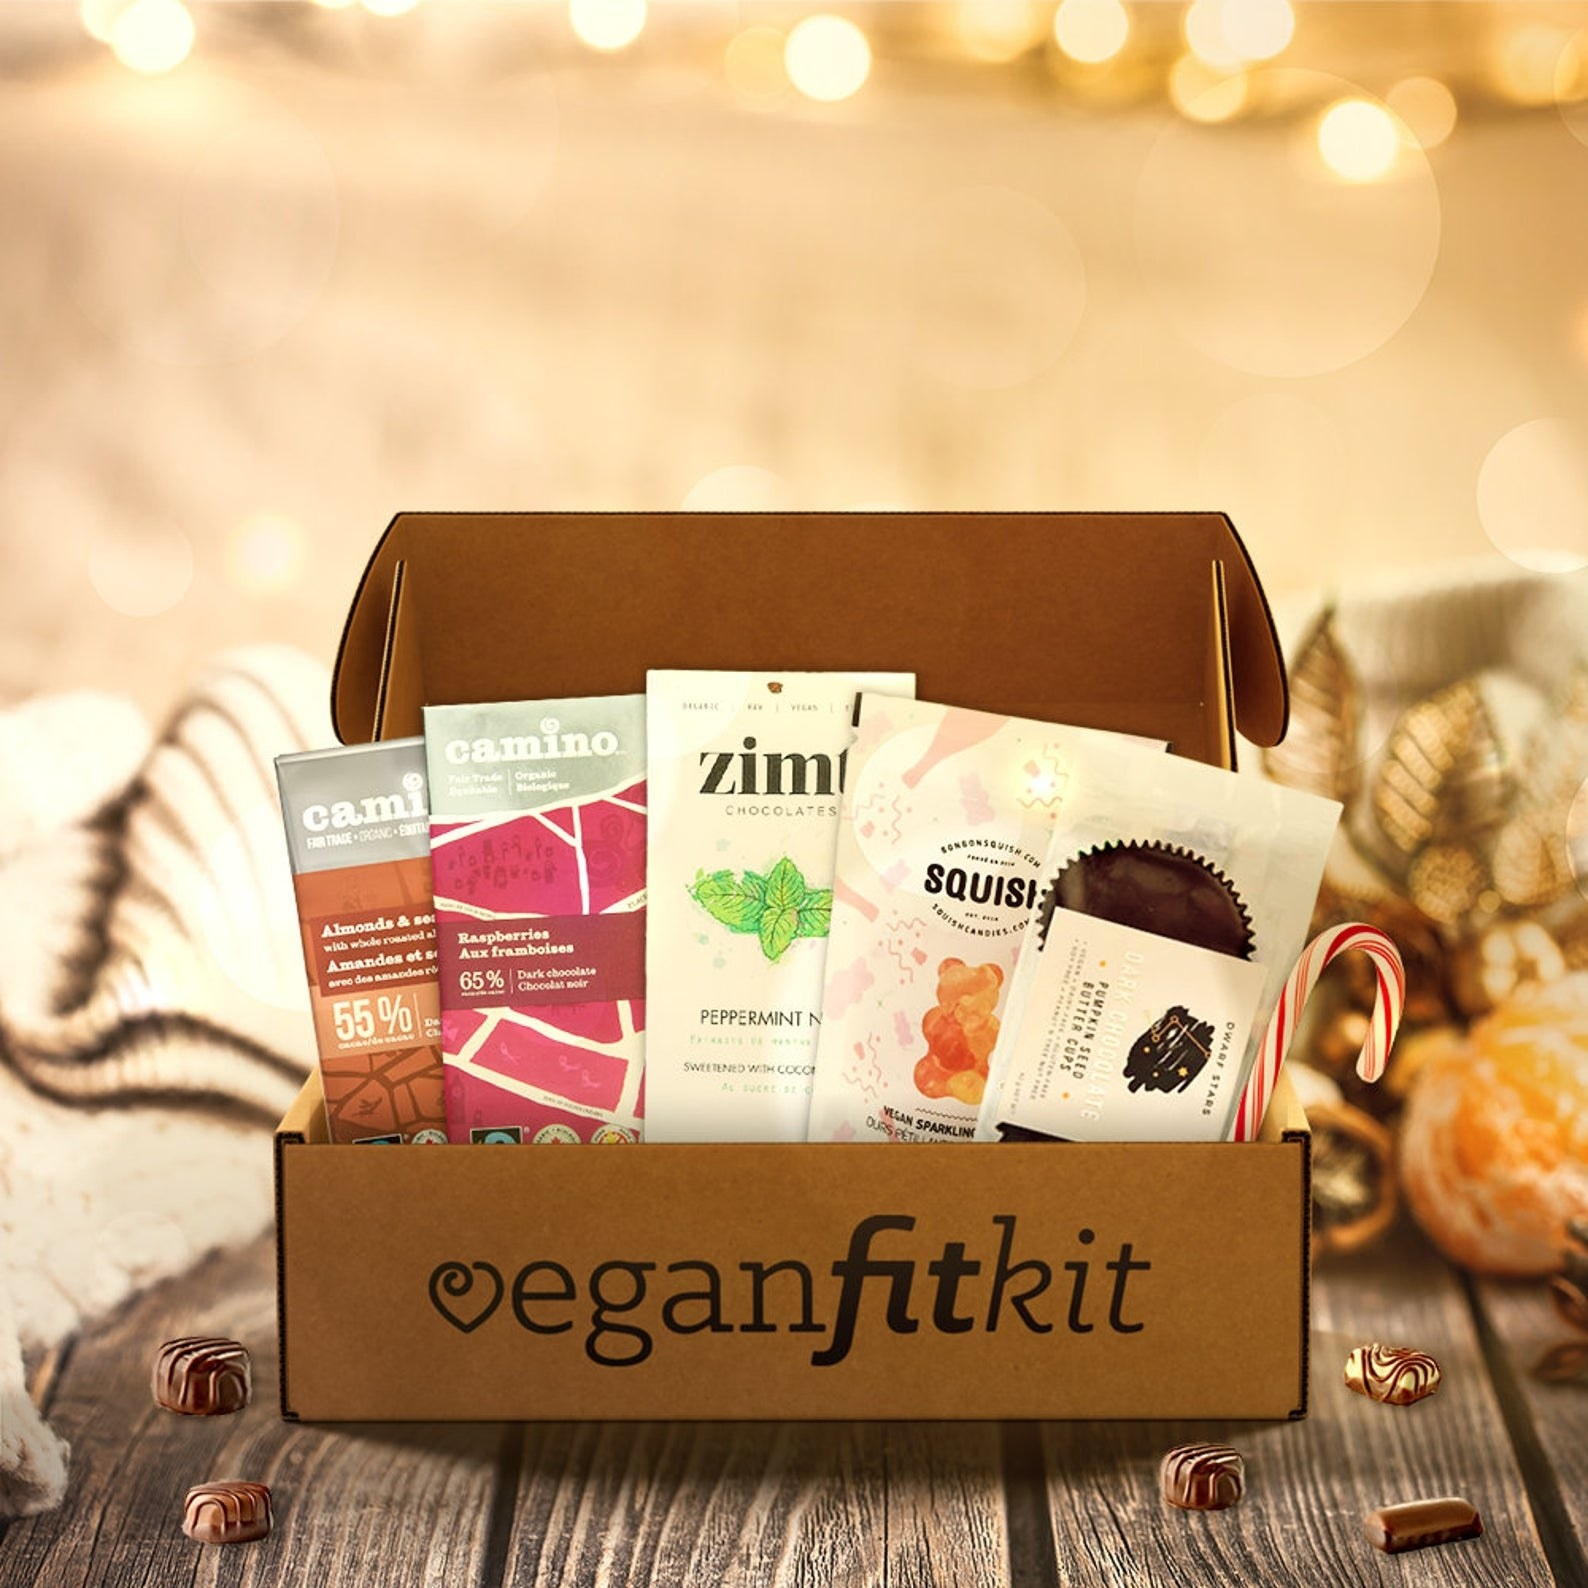 the sweets in the box that says veganfitkit